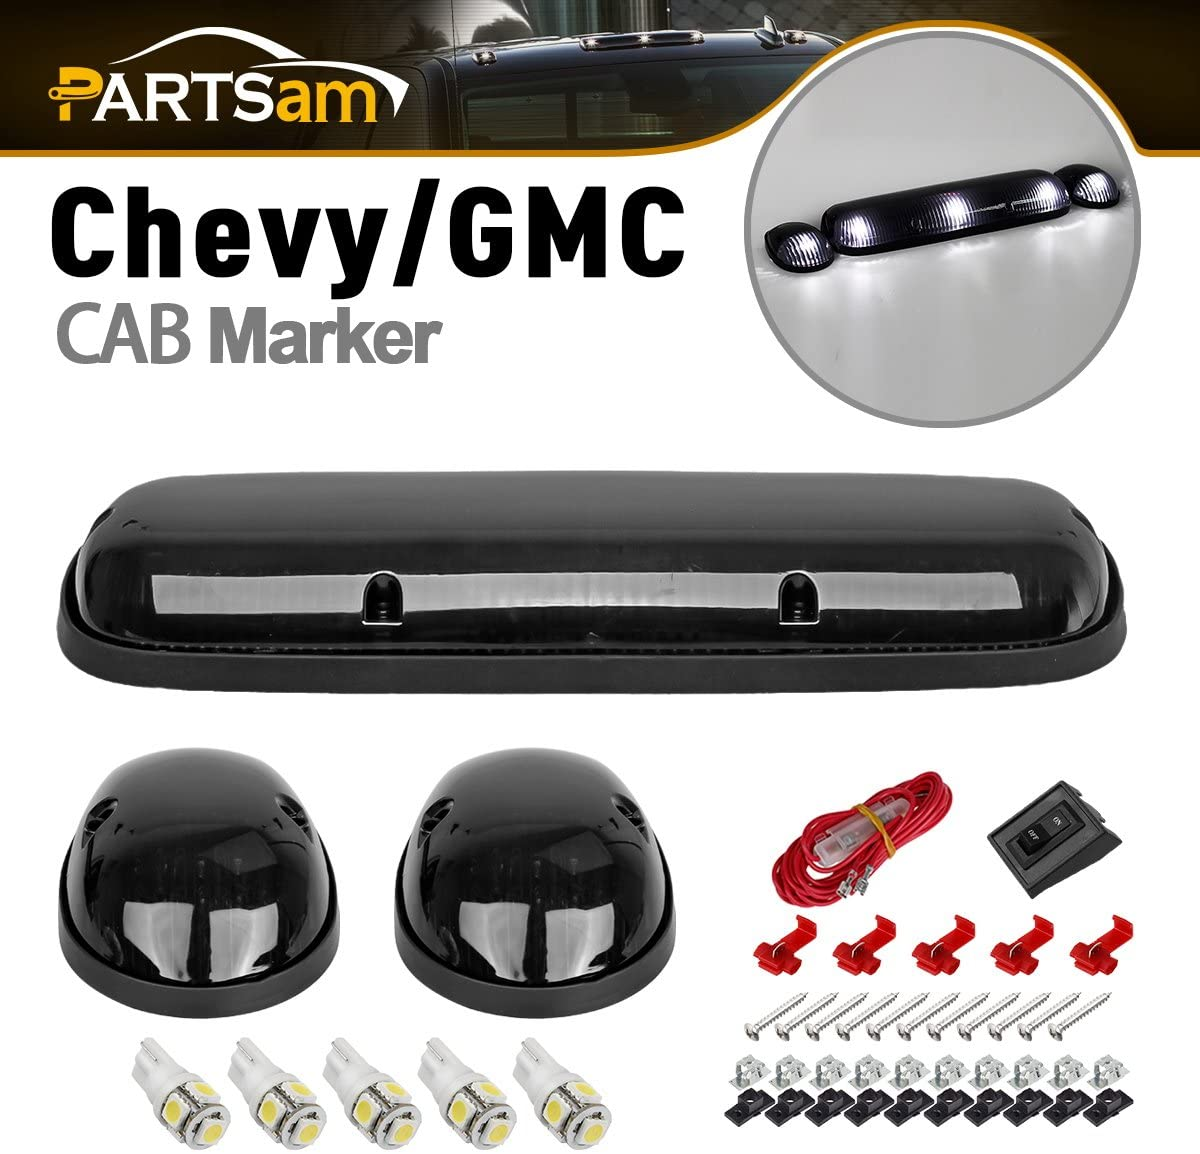 Partsam 3PCS LED Cab Marker Top Roof Running Lights with 5050 White T10 LED Bulbs Compatible with Chevrolet Silverado/GMC Sierra 1500 1500HD 2500 2500HD 3500 2002-2007 Truck